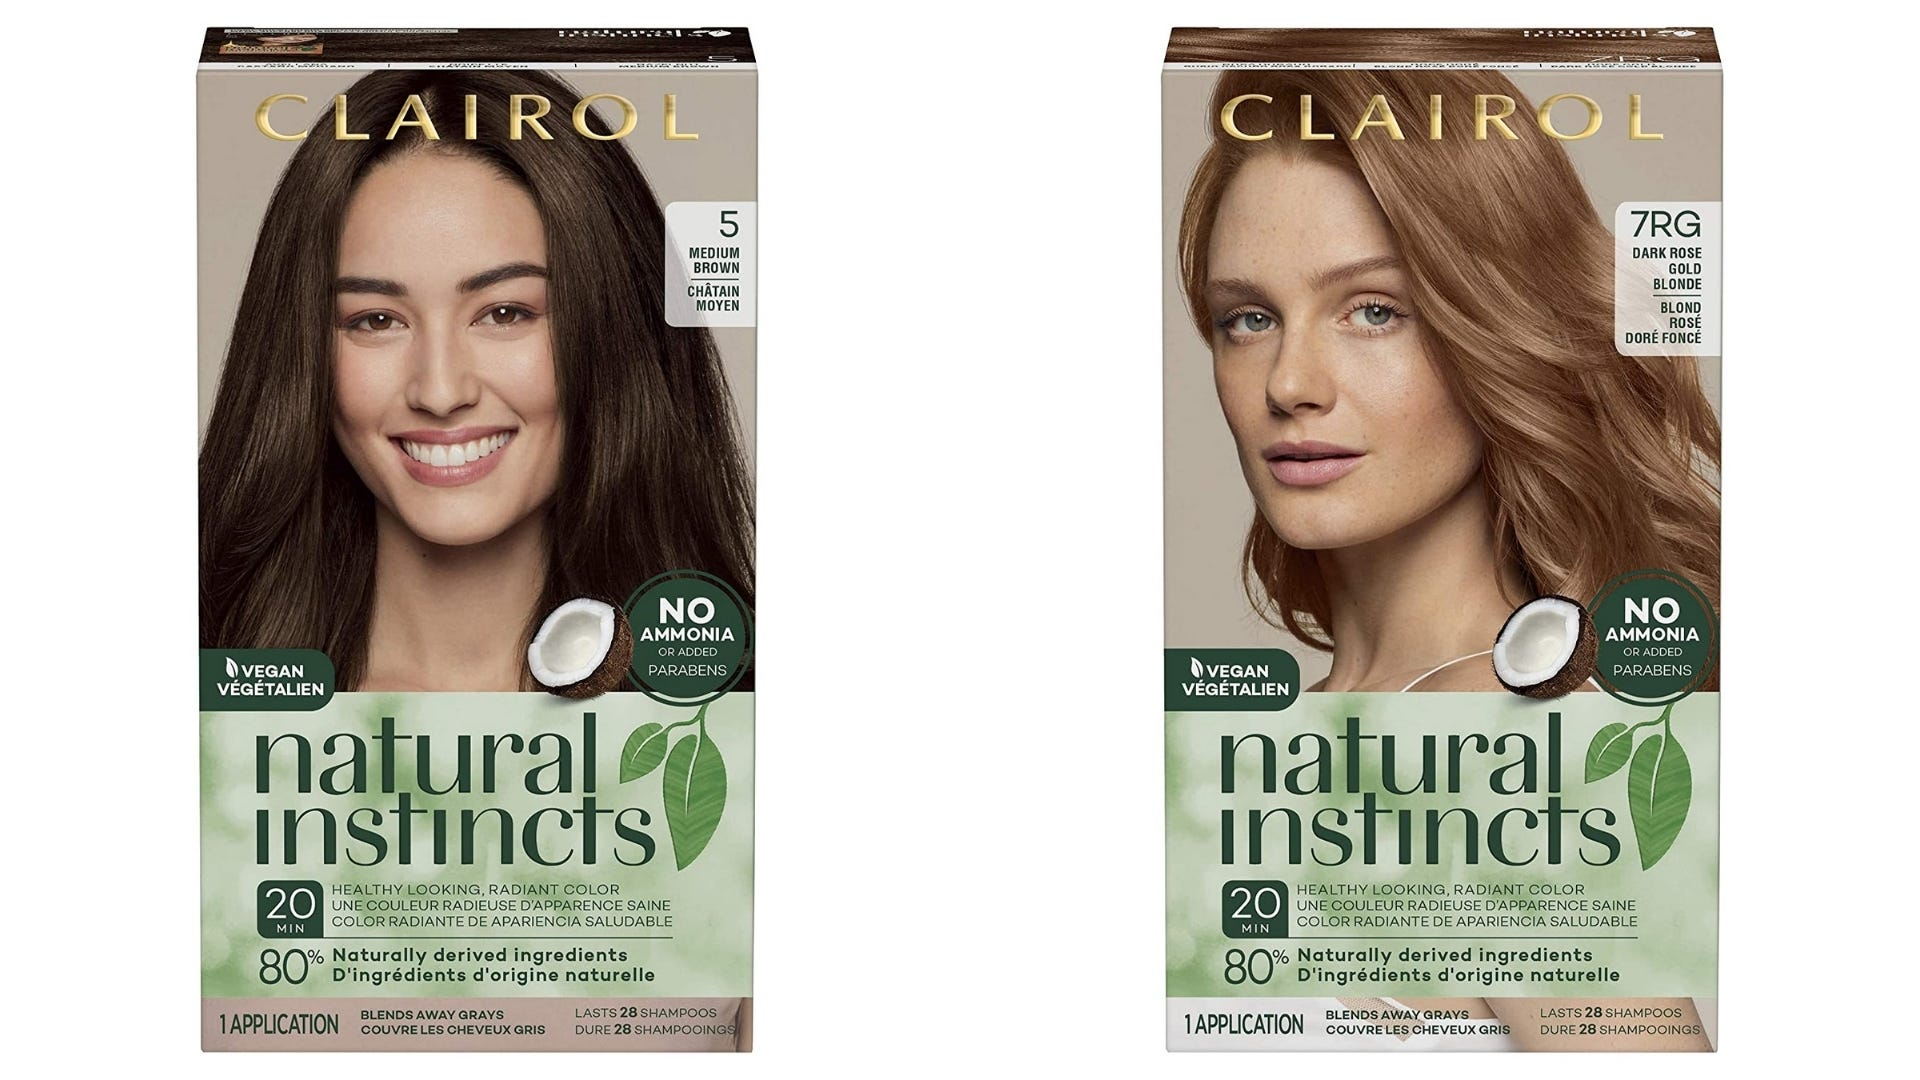 Two boxes of Clairol hair dye